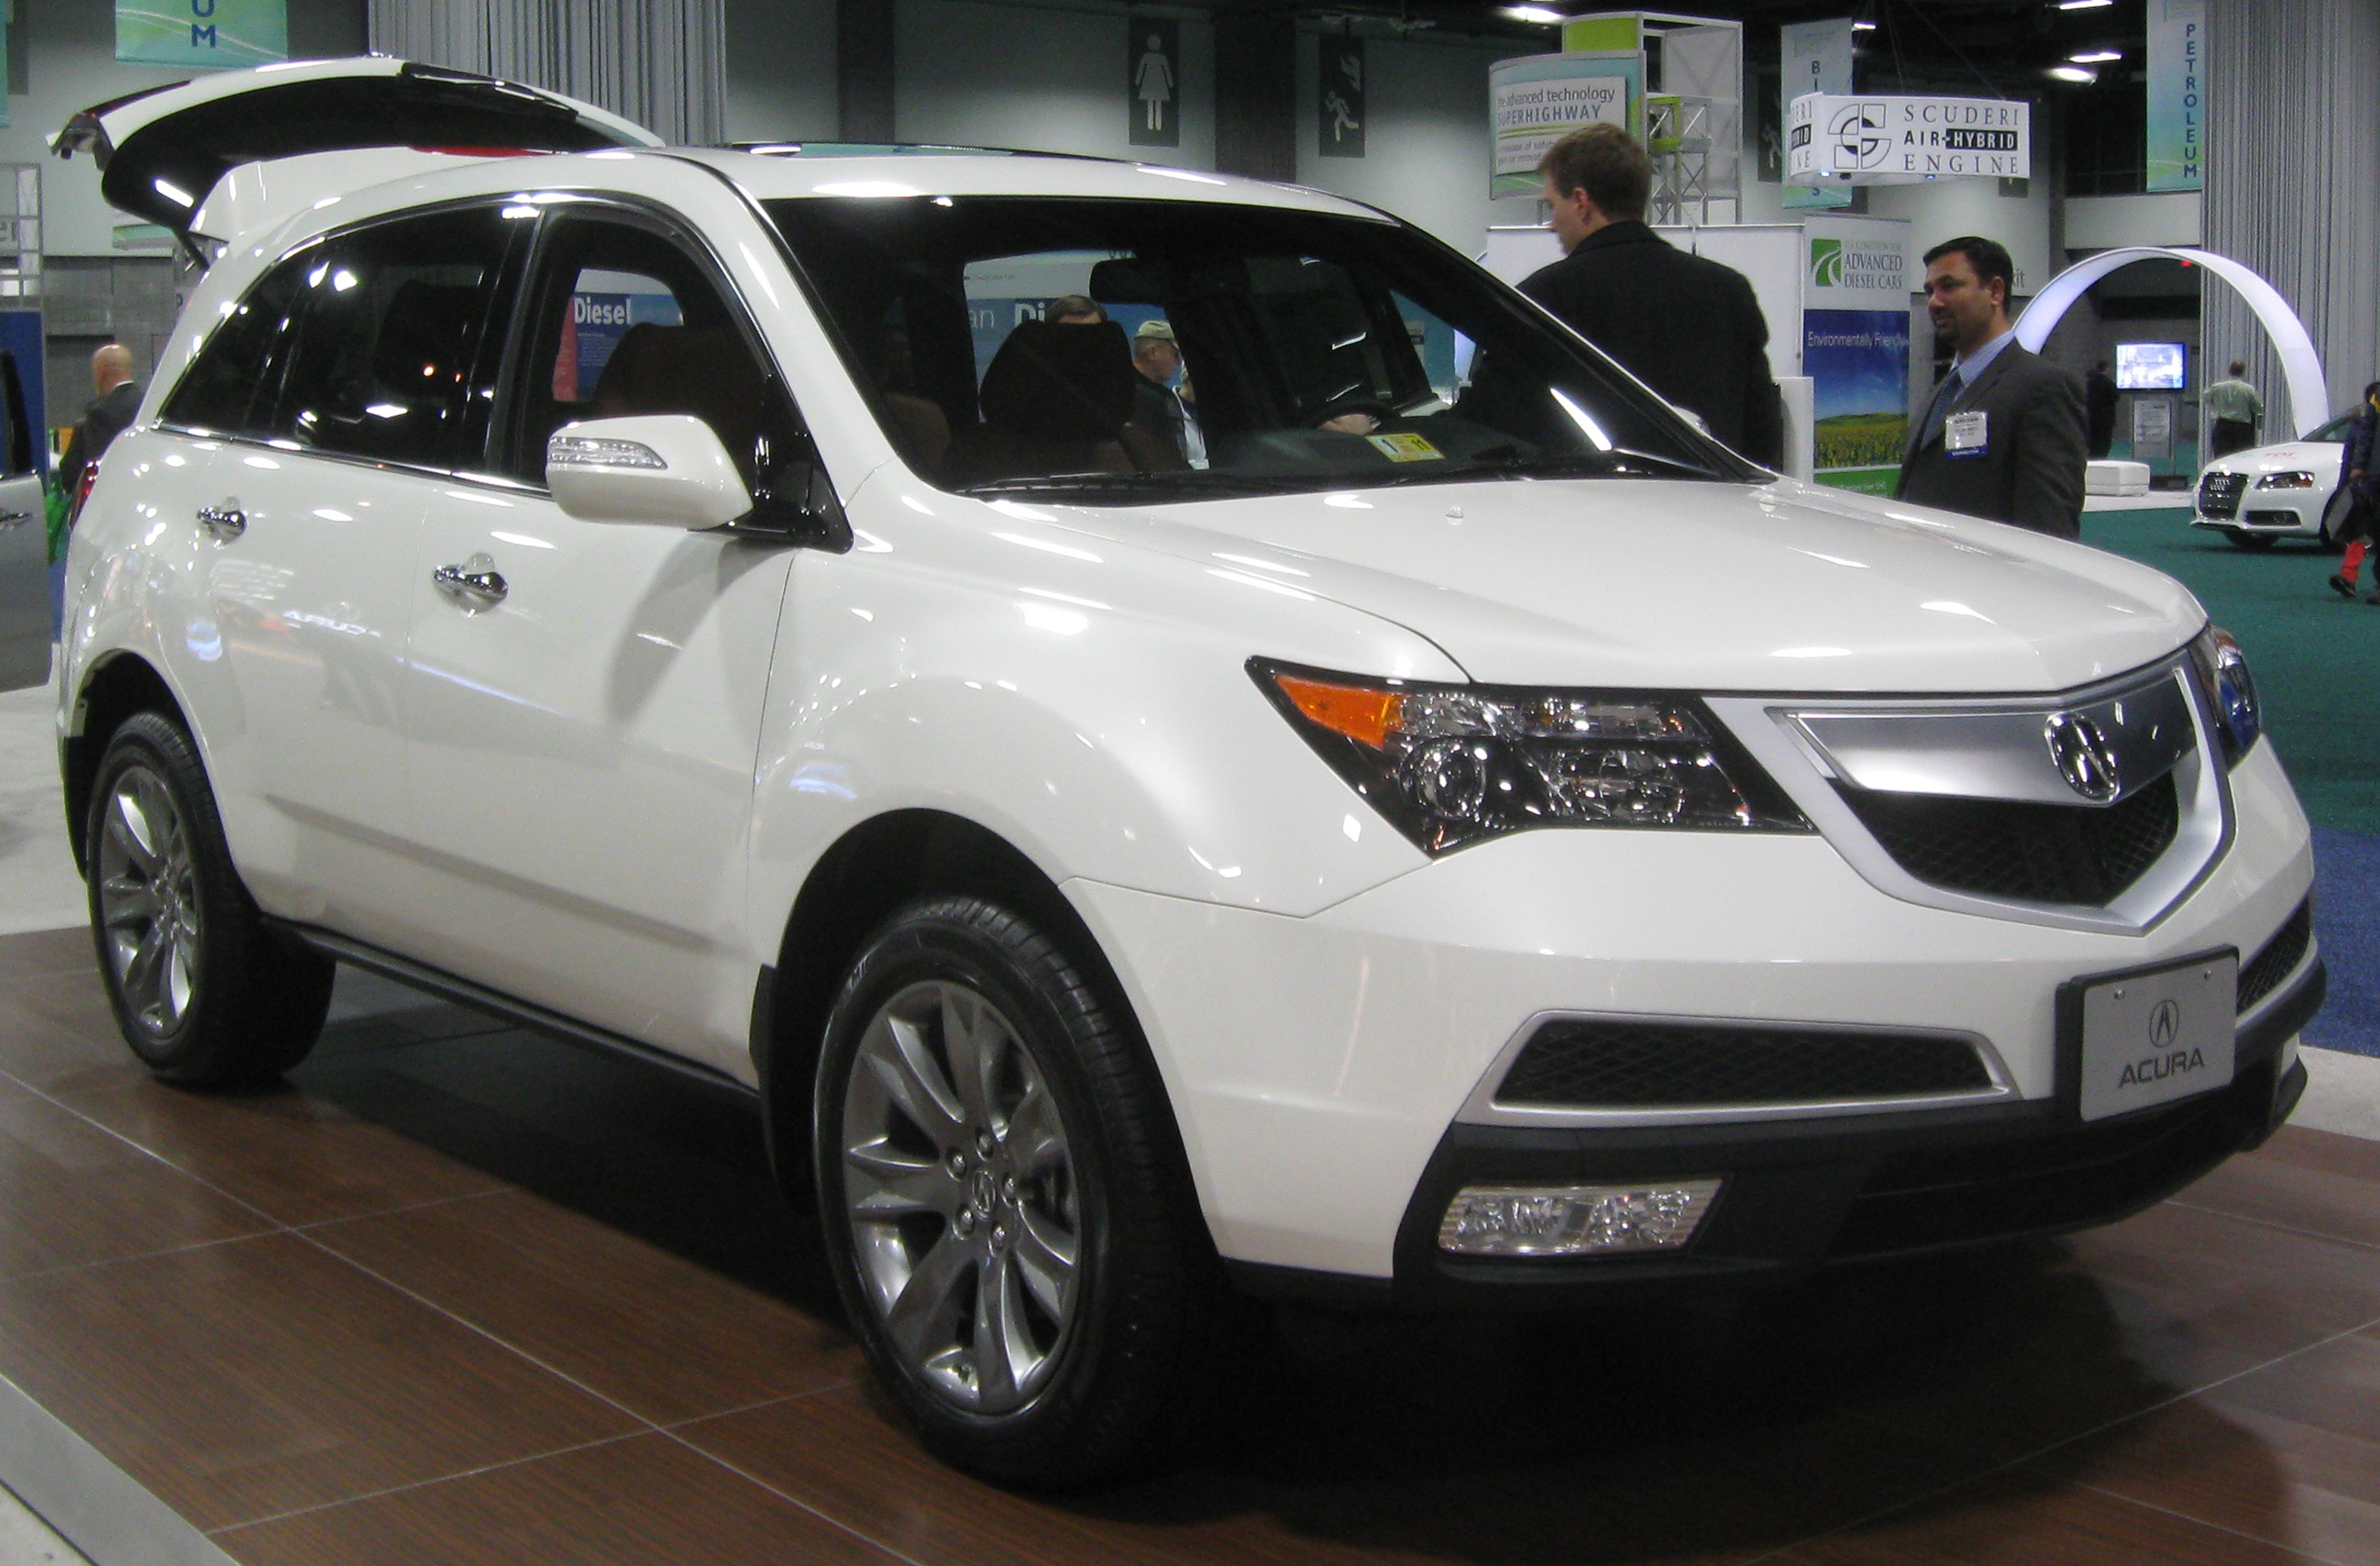 File:2010 Acura MDX -- 2010 DC.jpg - Wikimedia Commons